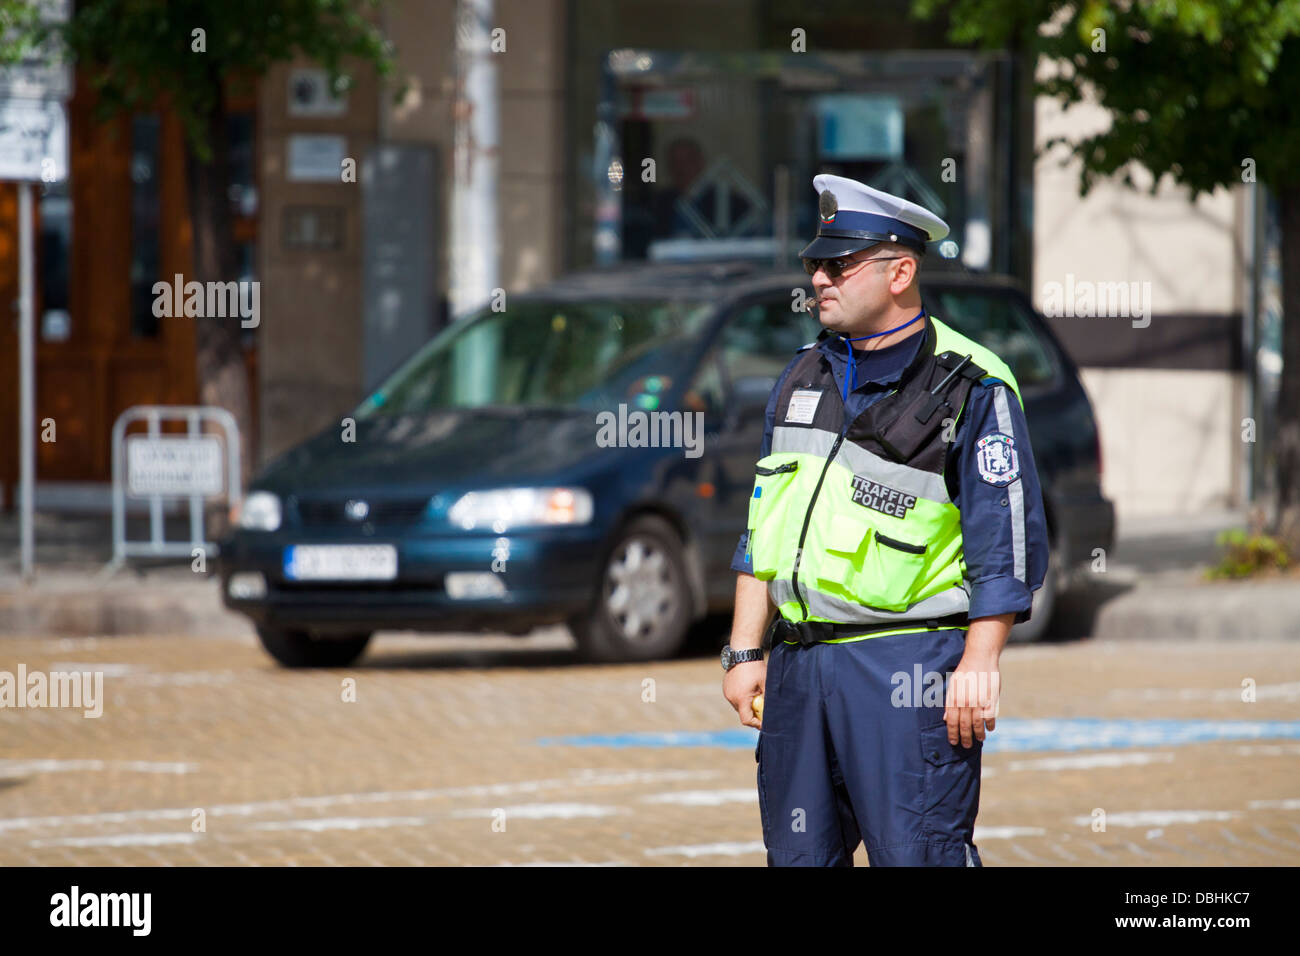 Bulgarian traffic policeman in reflective vest; central Sofia. - Stock Image